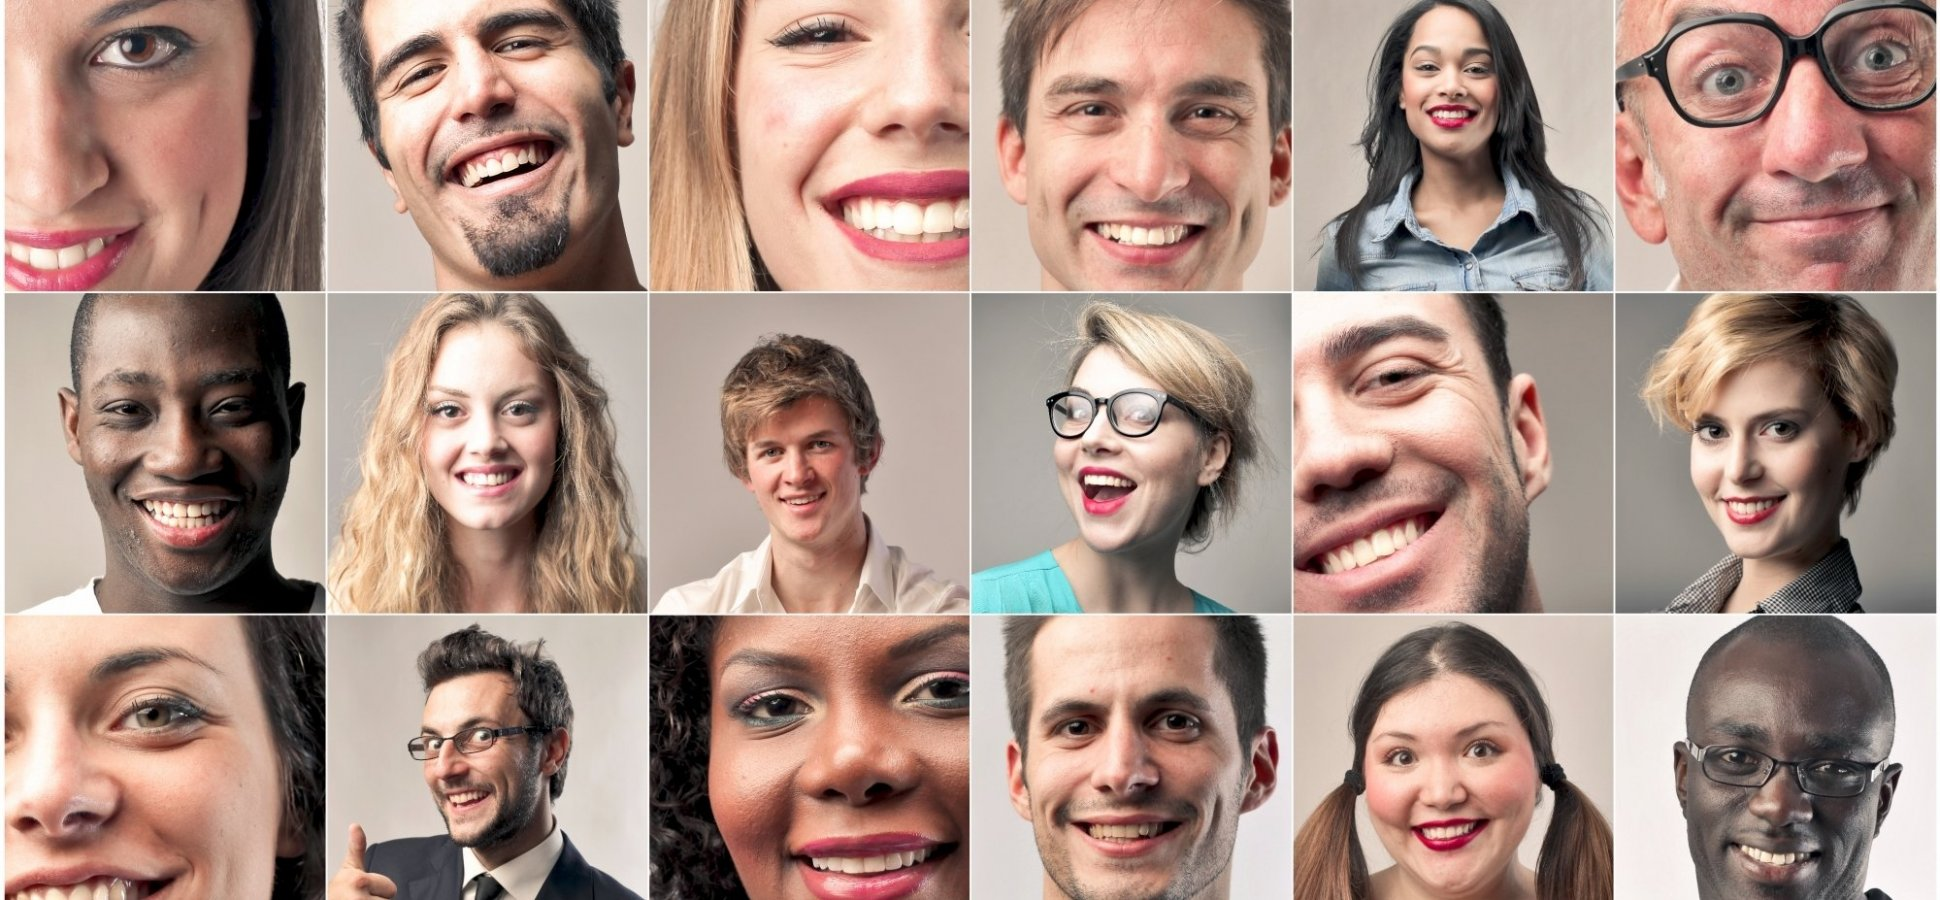 ai generated faces look like real human faces can you tell the